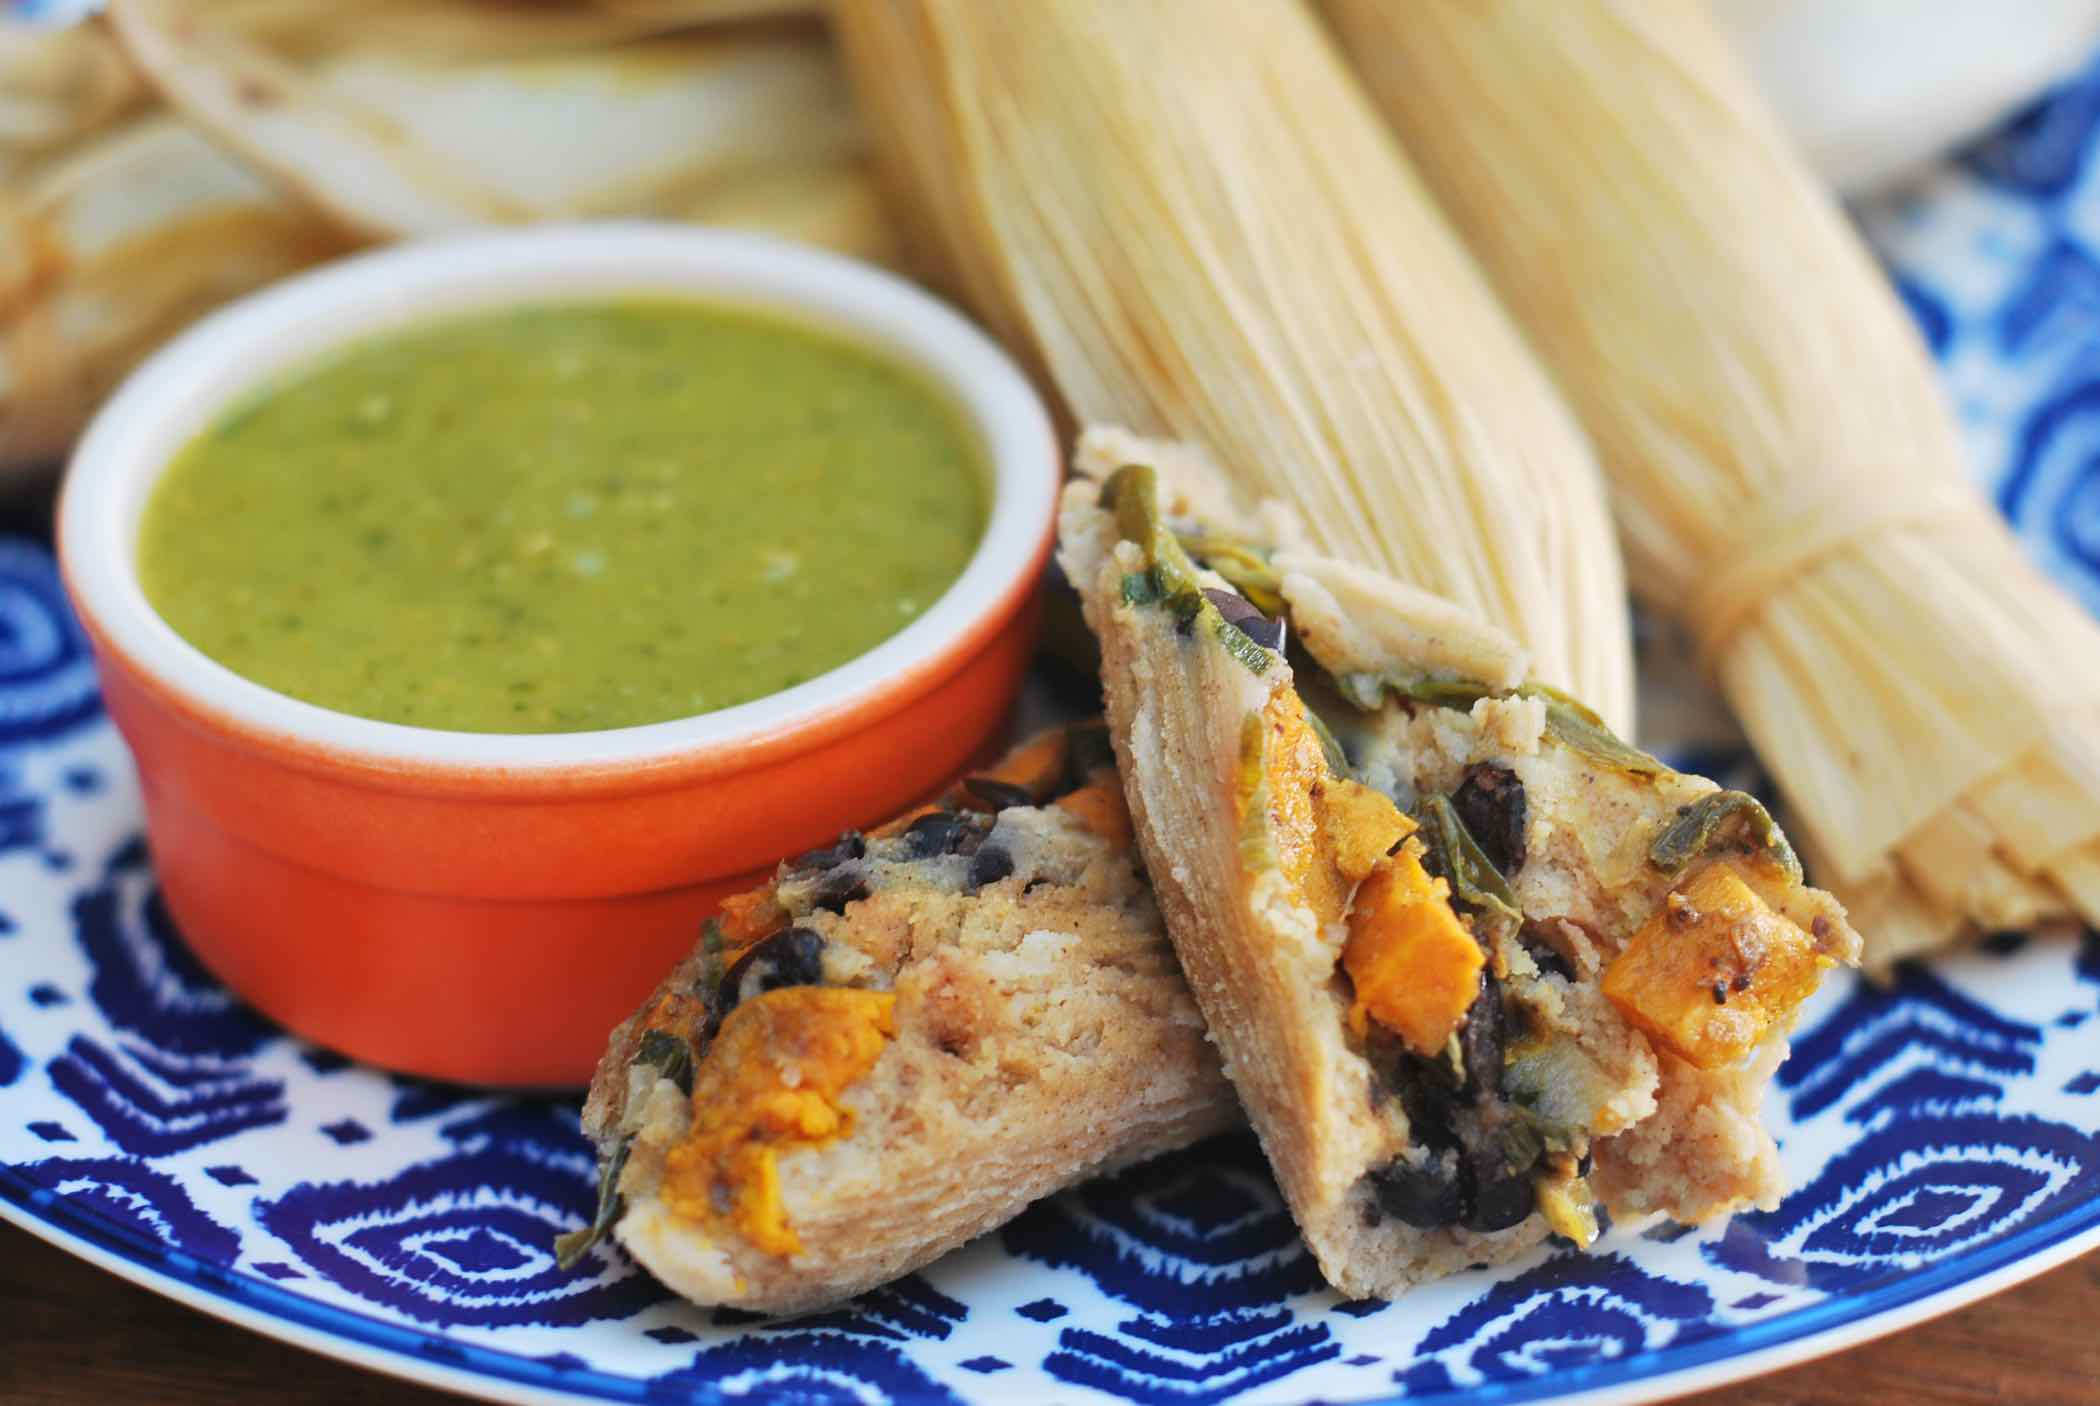 Tamales with sweet potato and black beans, with a green sauce